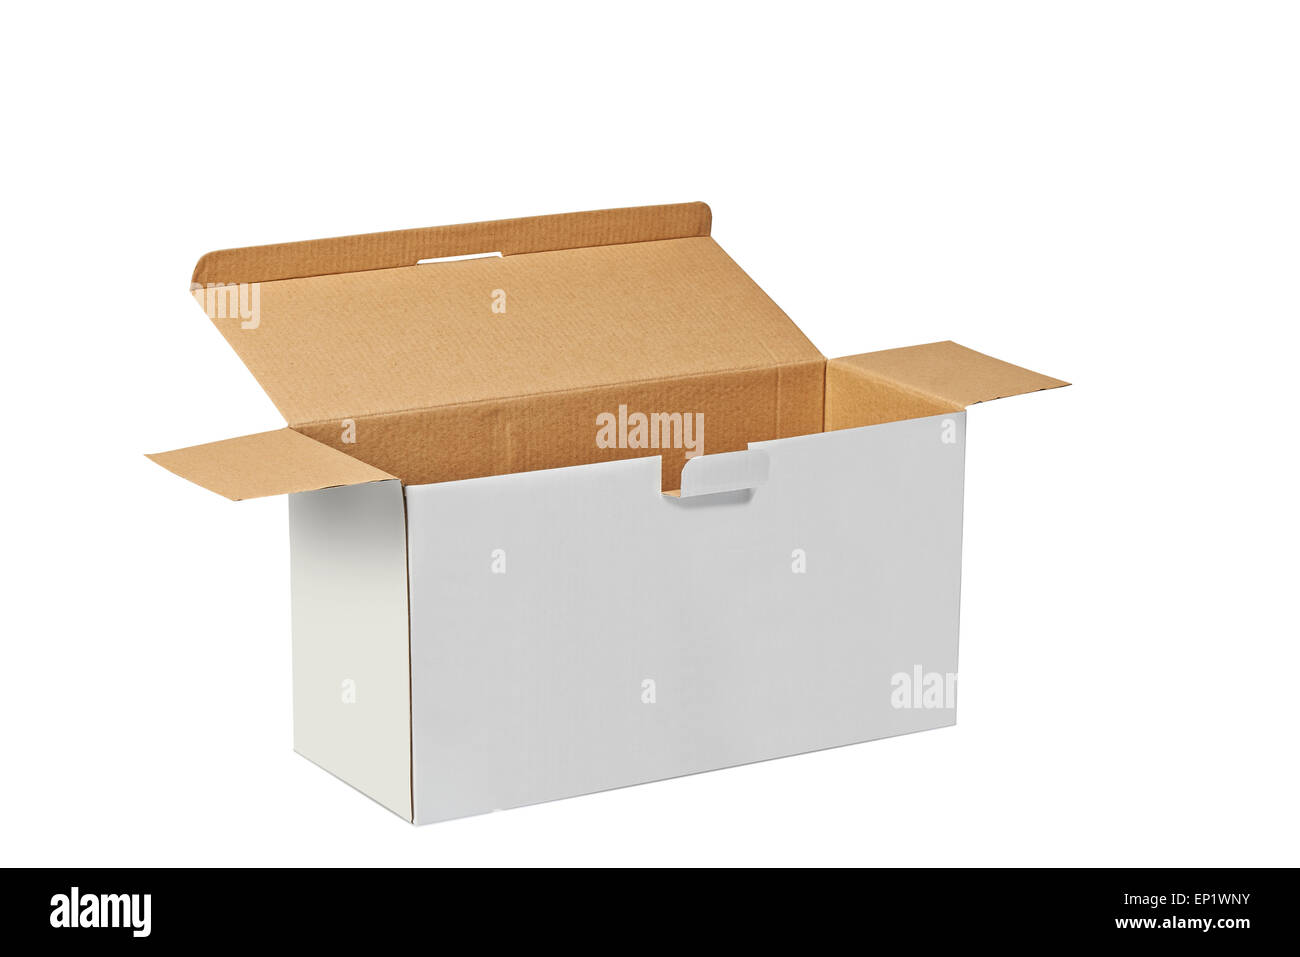 Real Cardboard box opened ready for packaging and delivering isolated on white with clipping path - Stock Image